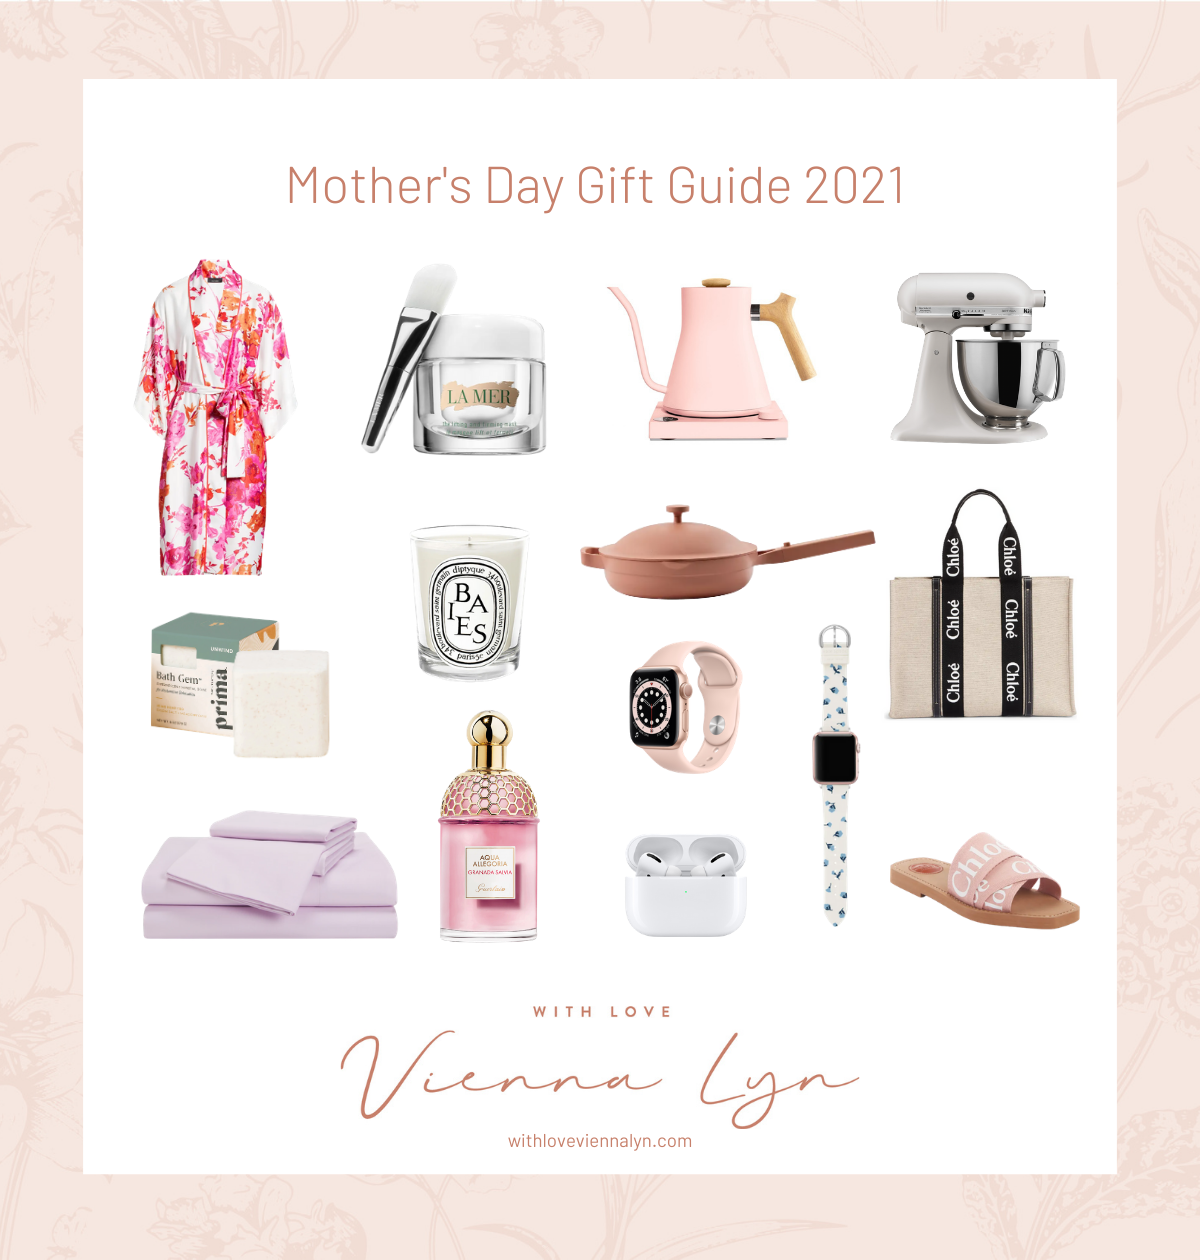 Mother's Day 2021 | WIth Love, Vienna Lyn